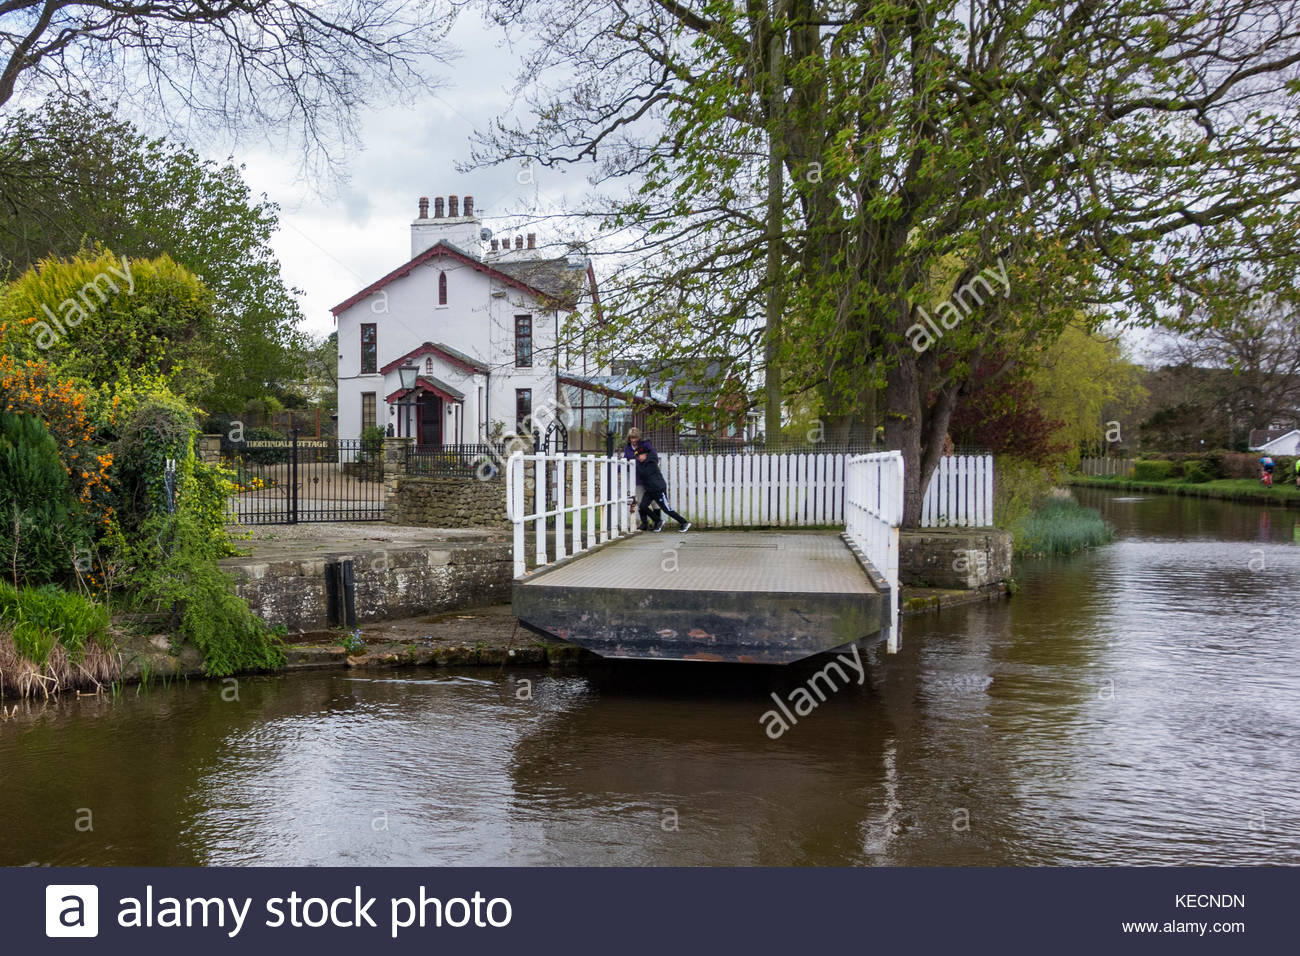 Navigating the swing bridge on the Lancaster Canal at Bolton le Sands, Carnforth, Lancashire, England, UK - Stock Image